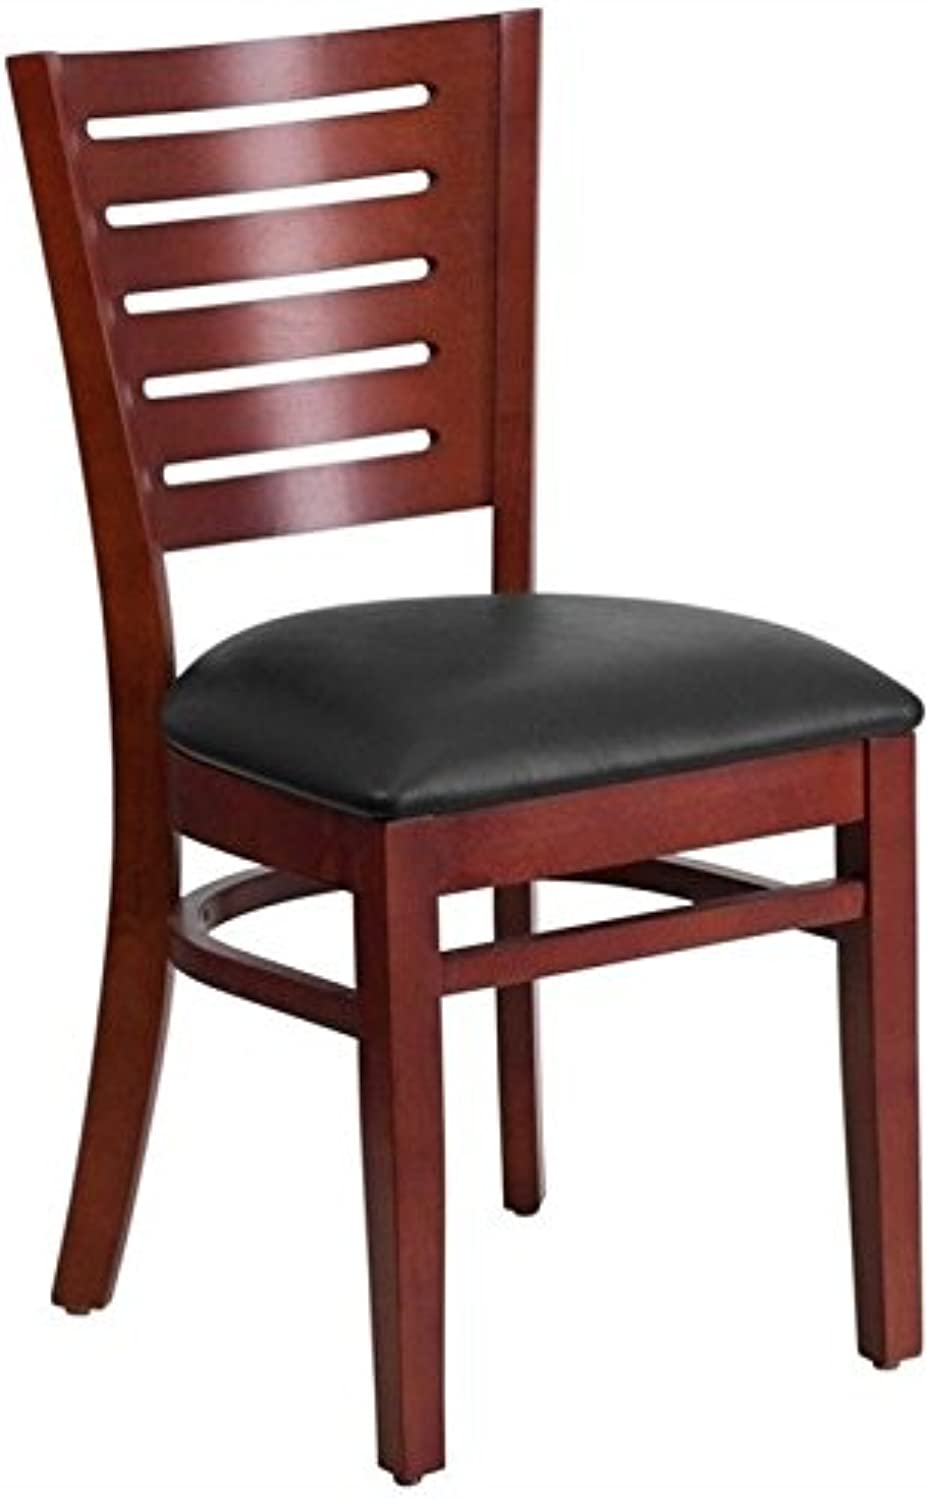 Bowery Hill Upholstered Restaurant Dining Chair in Mahogany and Black